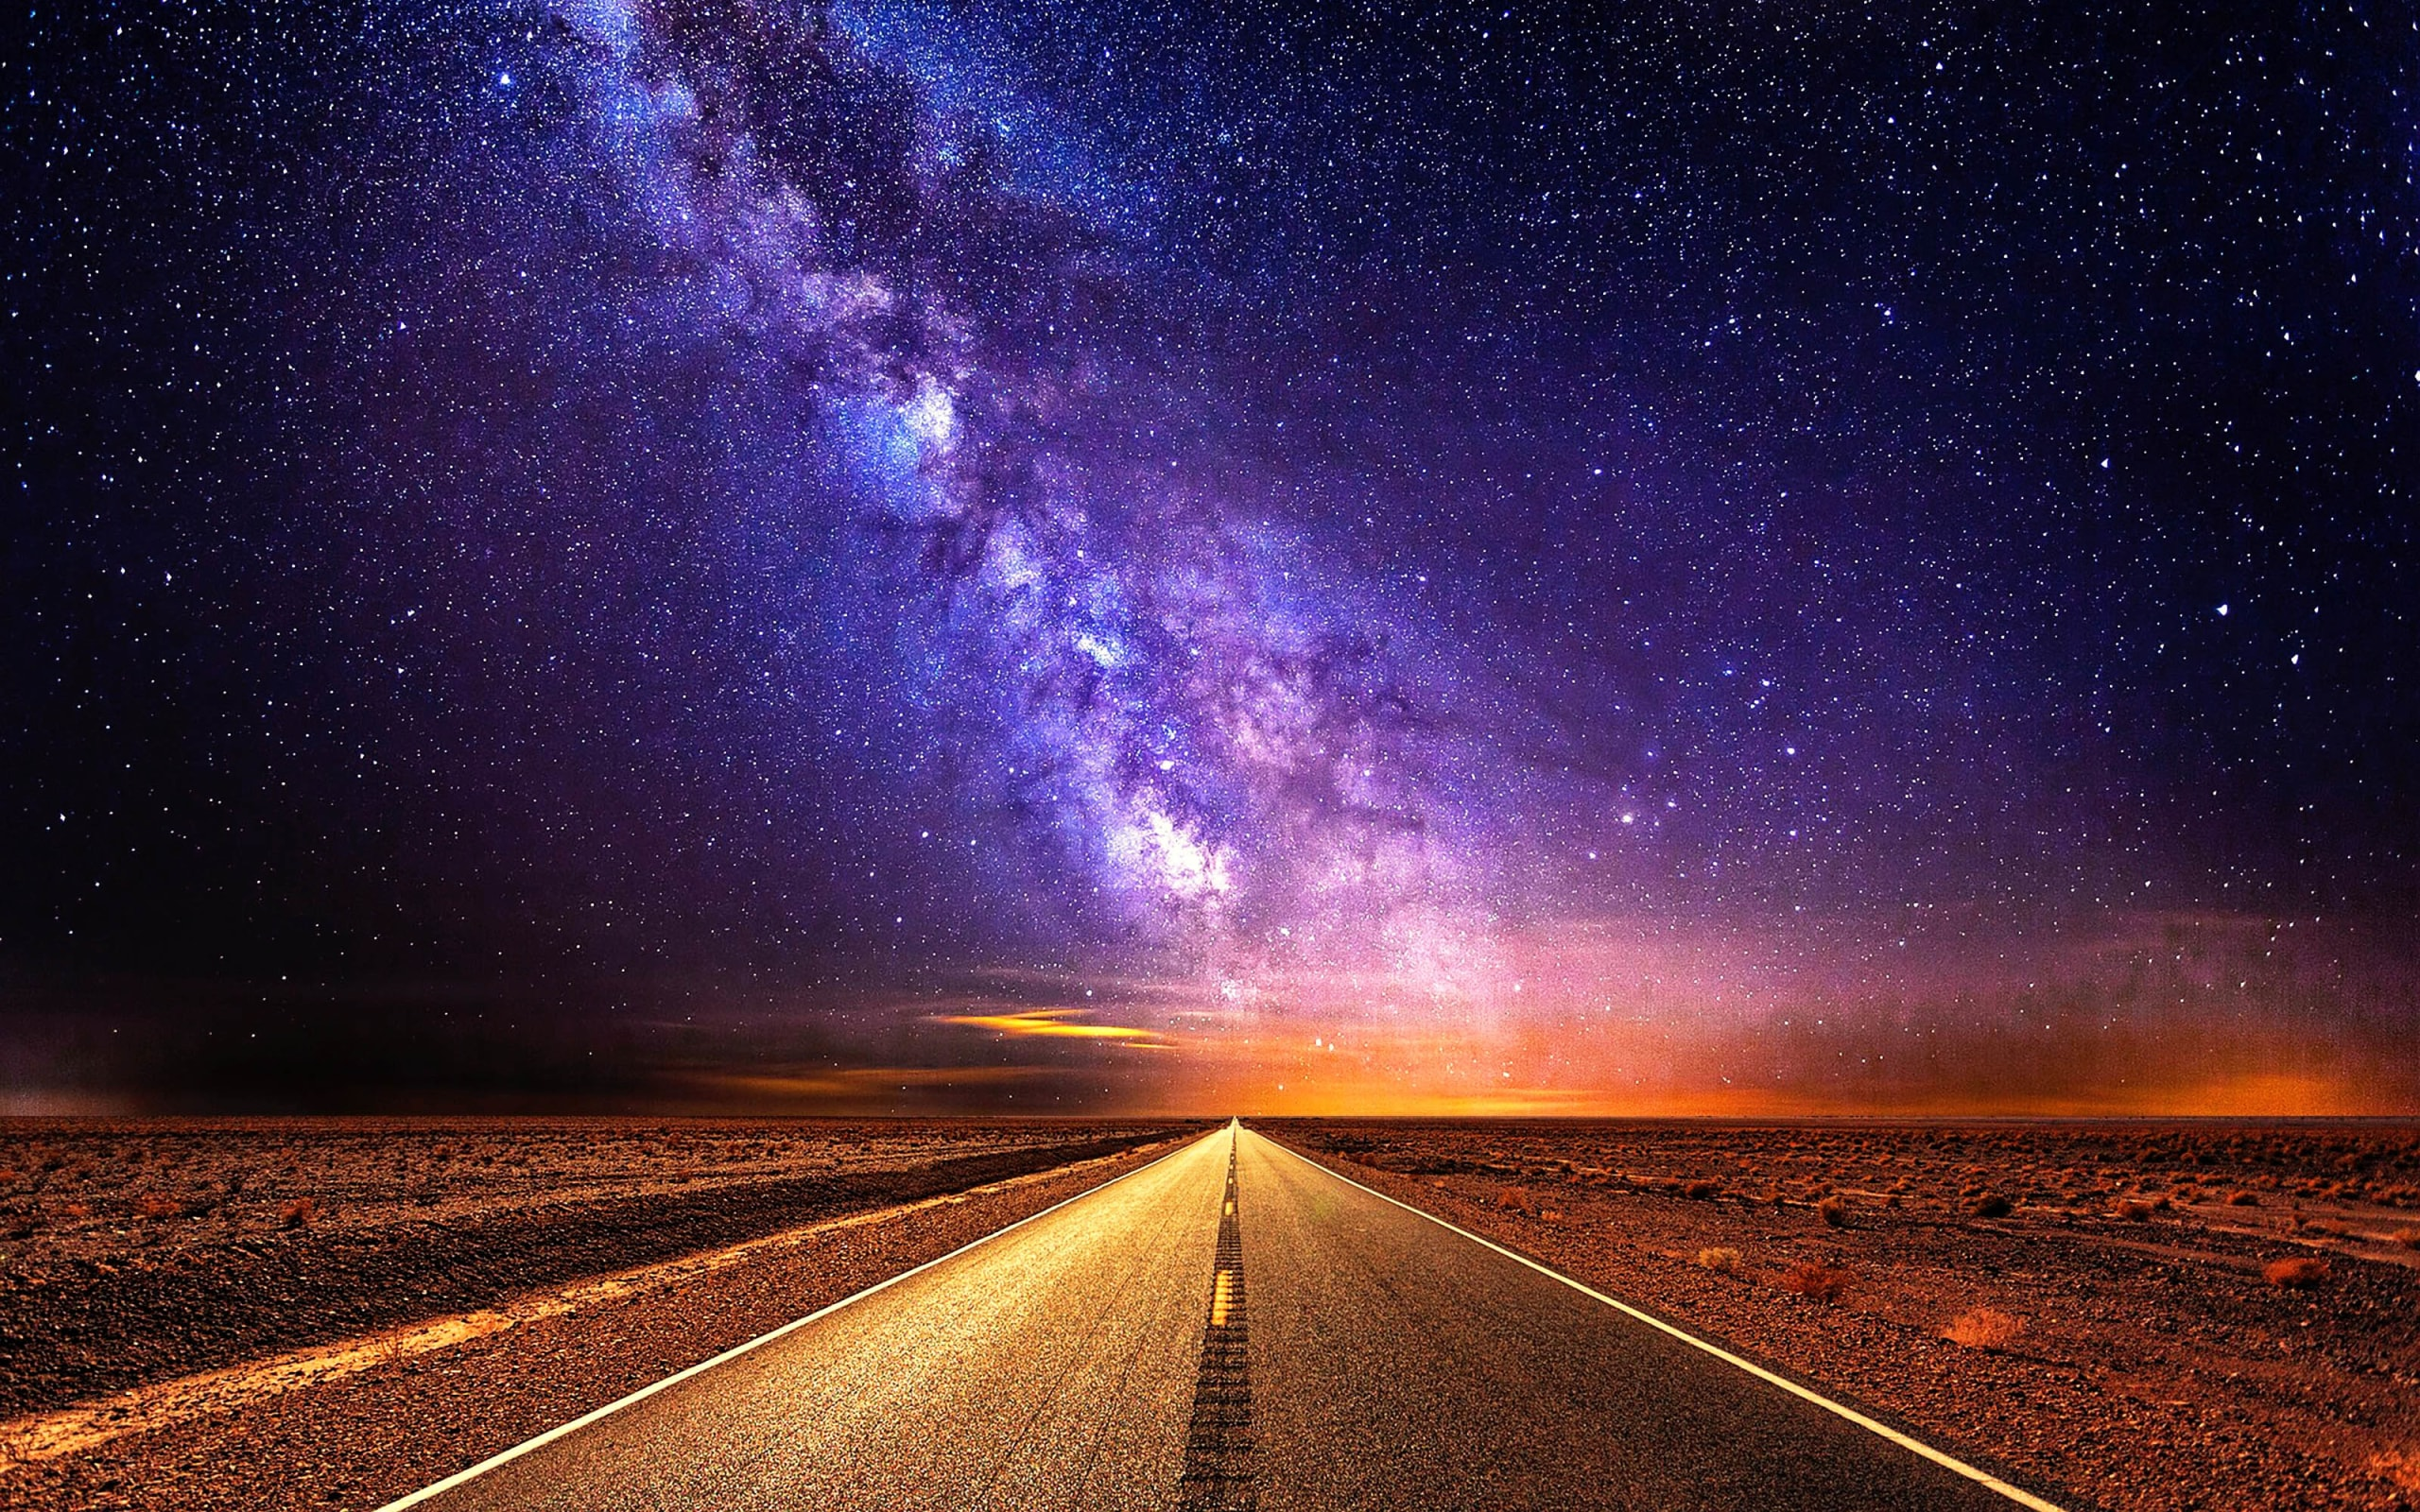 wallpaper of night road starlight sky stars background